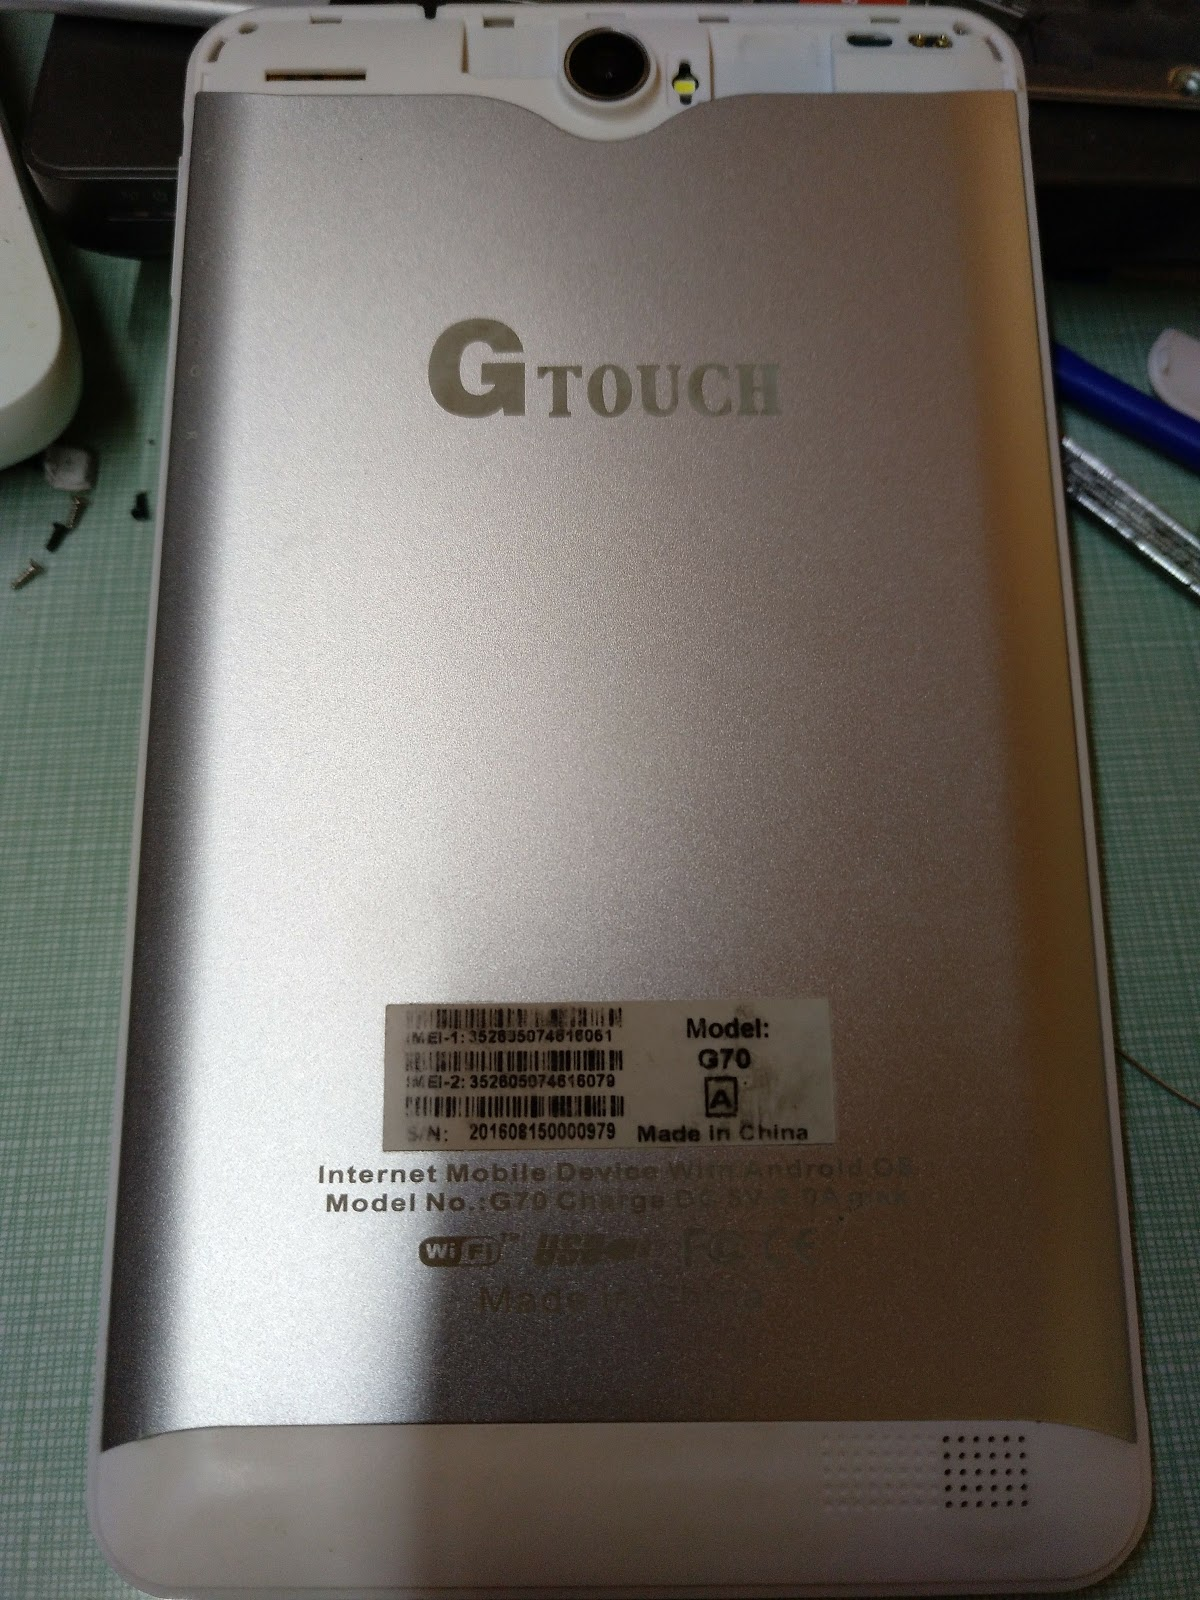 Gtouch G70 s7060a s108-7730-d2(216) Firmware - www gsmwan com